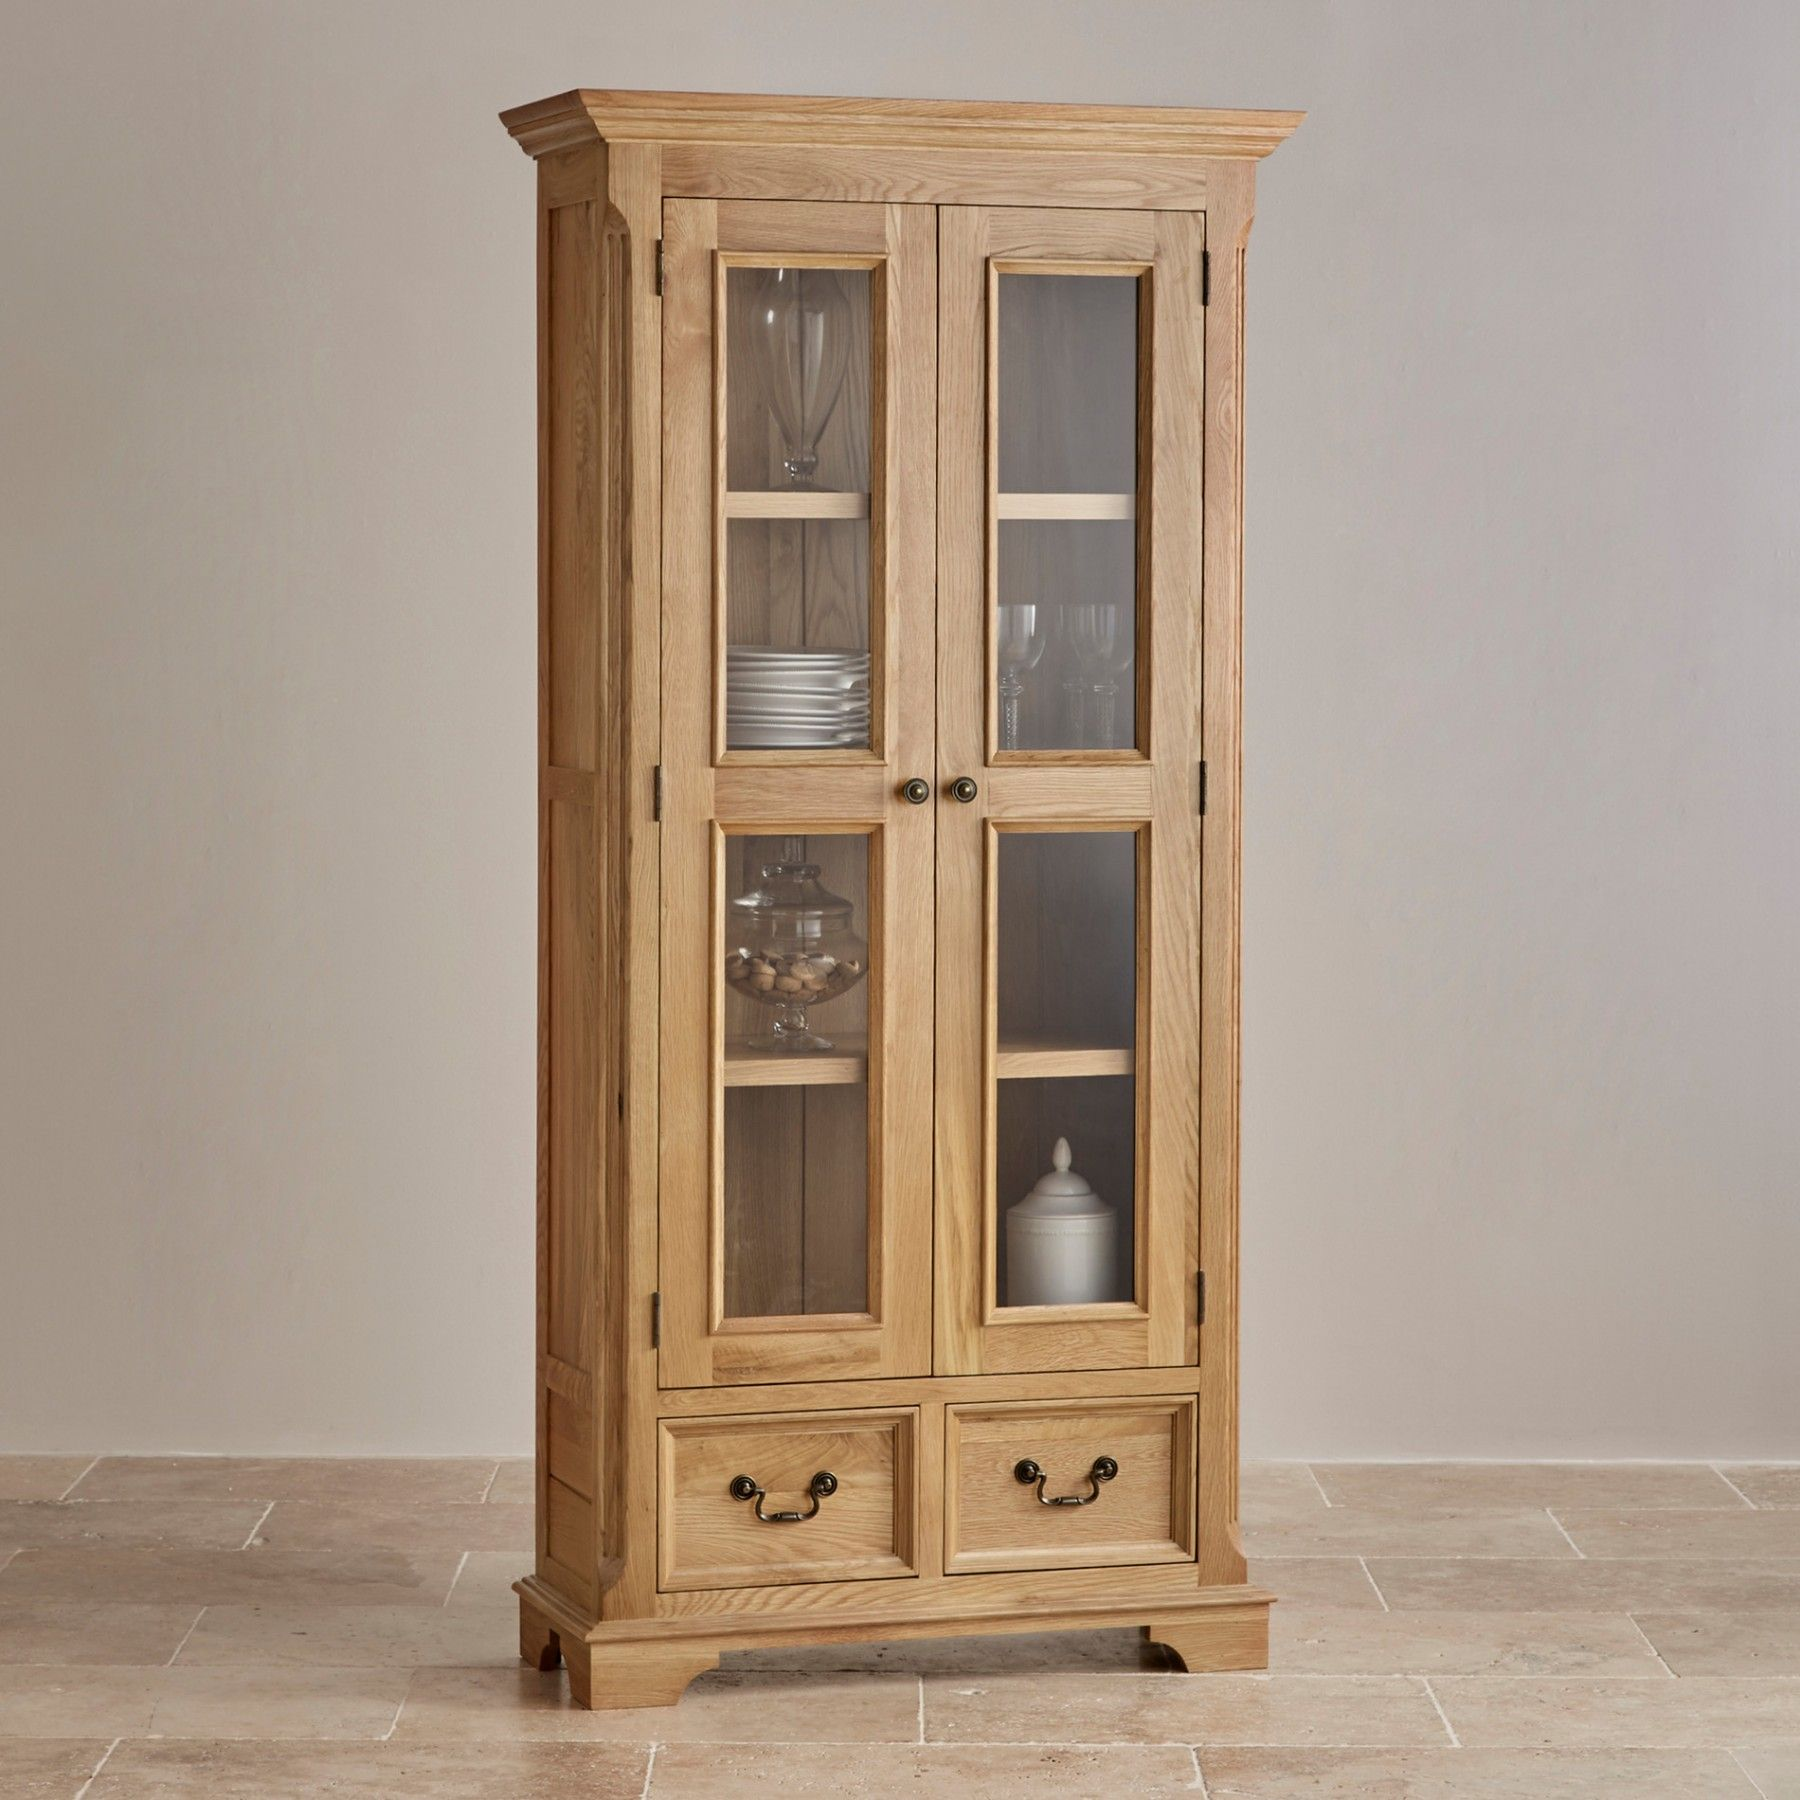 The Elegant Edinburgh Natural Solid Oak Display Cabinet Has Two